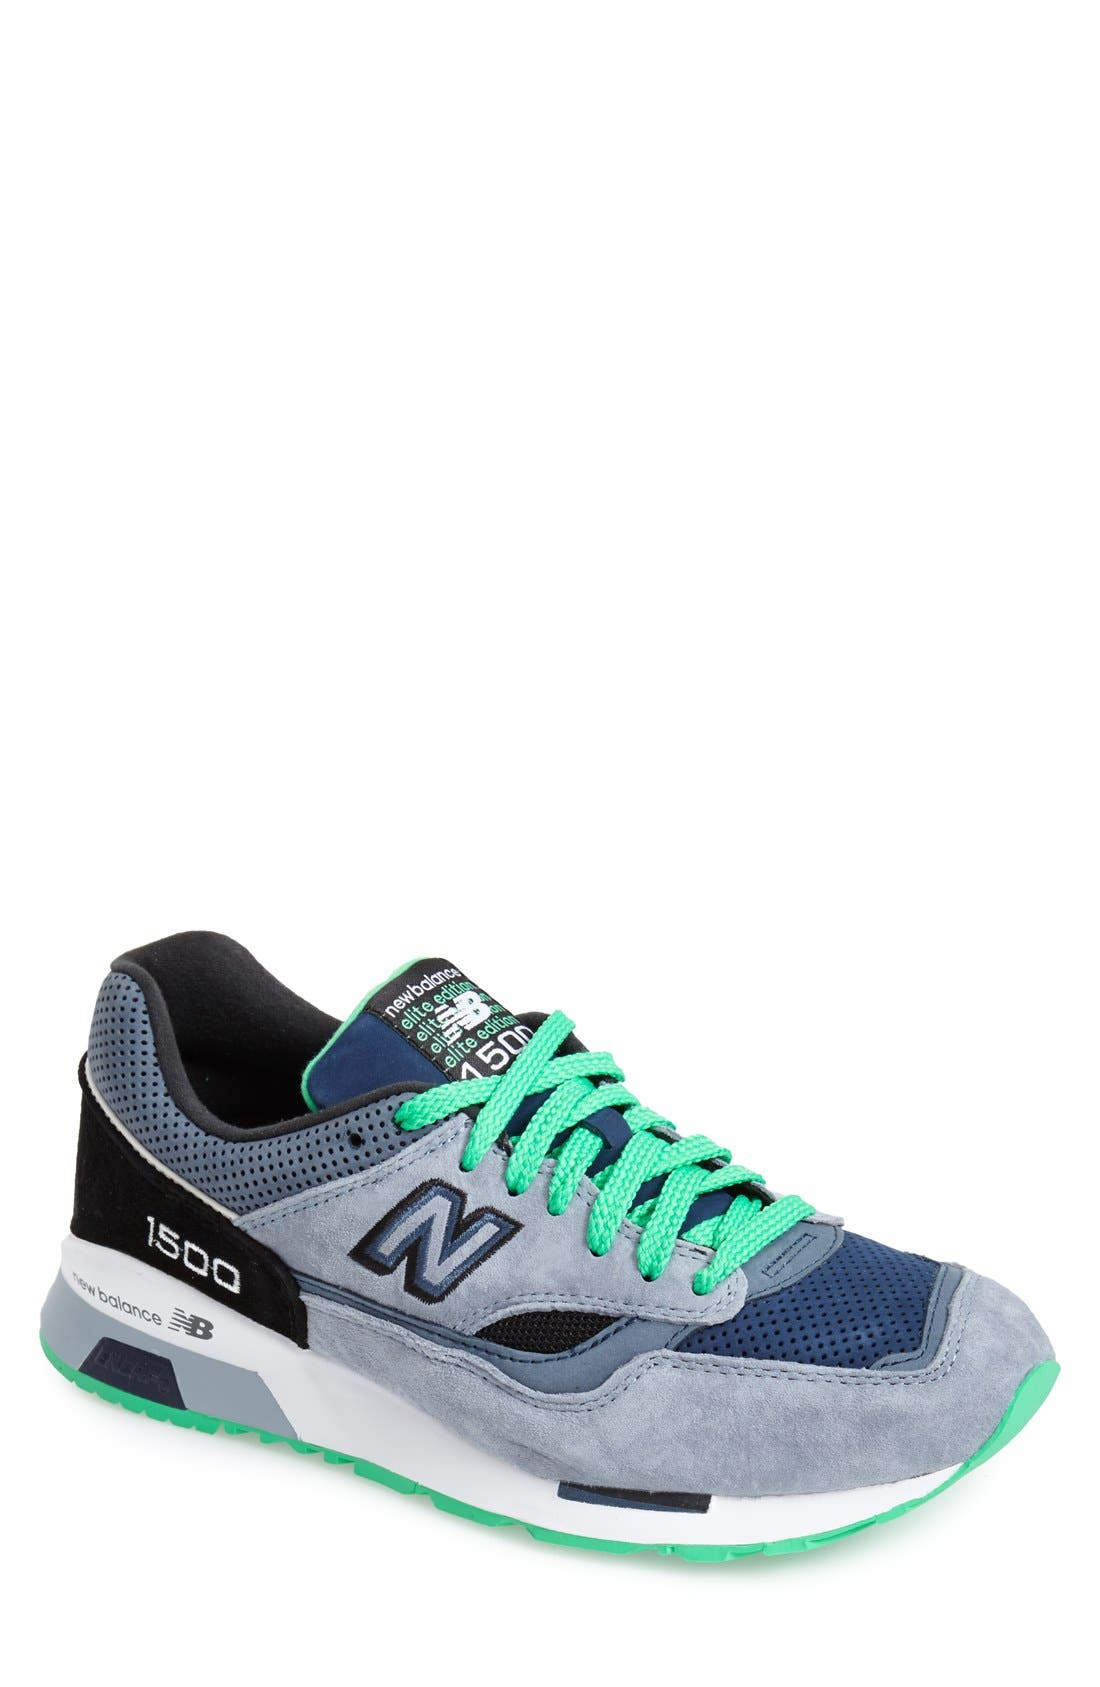 Main Image - New Balance '1500' Sneaker (Men)